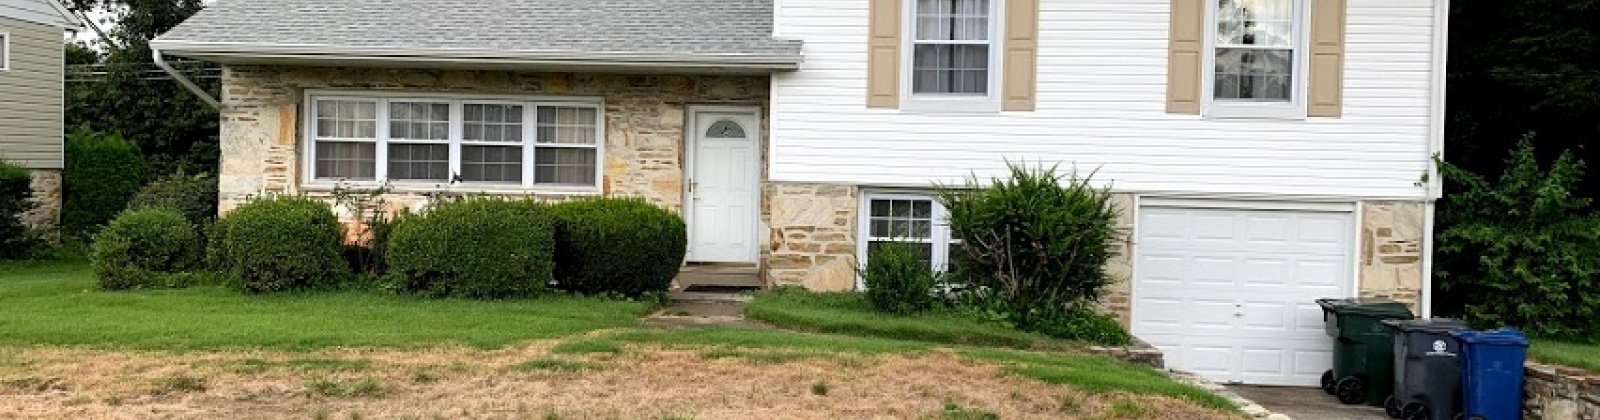 3 Bedrooms Bedrooms, ,2.5 BathroomsBathrooms,Single Family Home,For Sale,1131